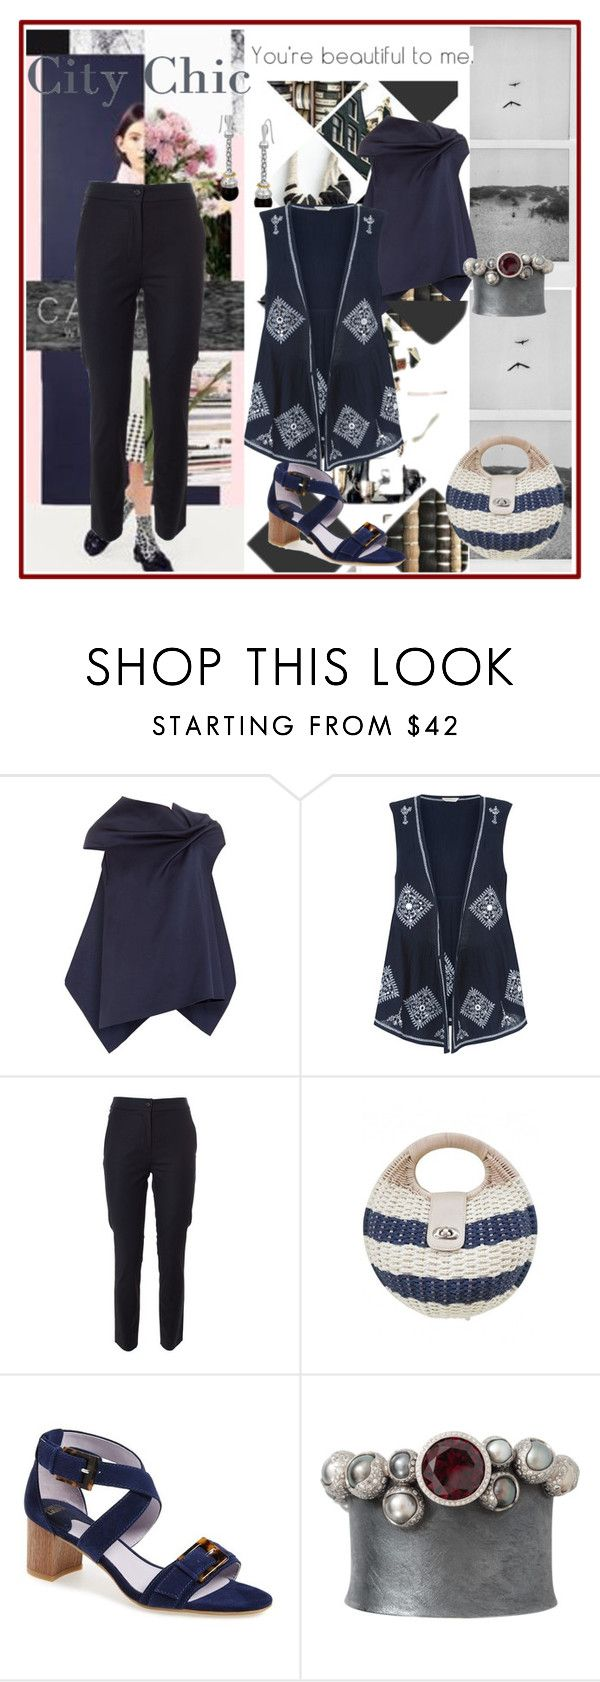 """""""city chic"""" by peeweevaaz ❤ liked on Polyvore featuring Roland Mouret, Monsoon, Moschino, Johnston & Murphy, Todd Reed, outfit, polyvoreeditorial and polyvorefashion"""